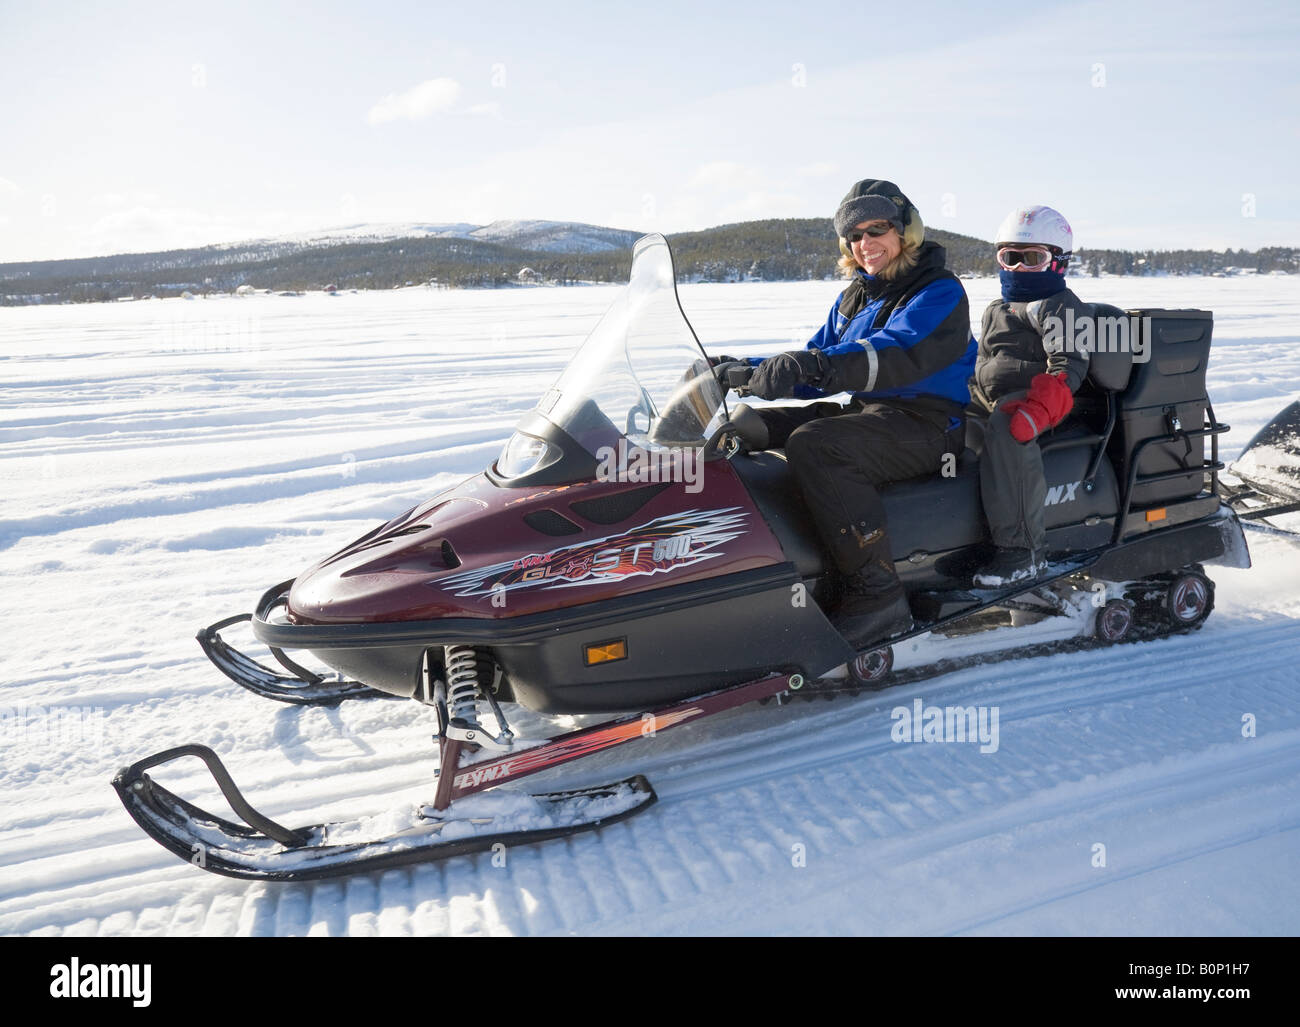 A woman in her fourties rides a Lynx snowmobile in snowy Lapland, a six years old girl is sitting on the back seat - Stock Image